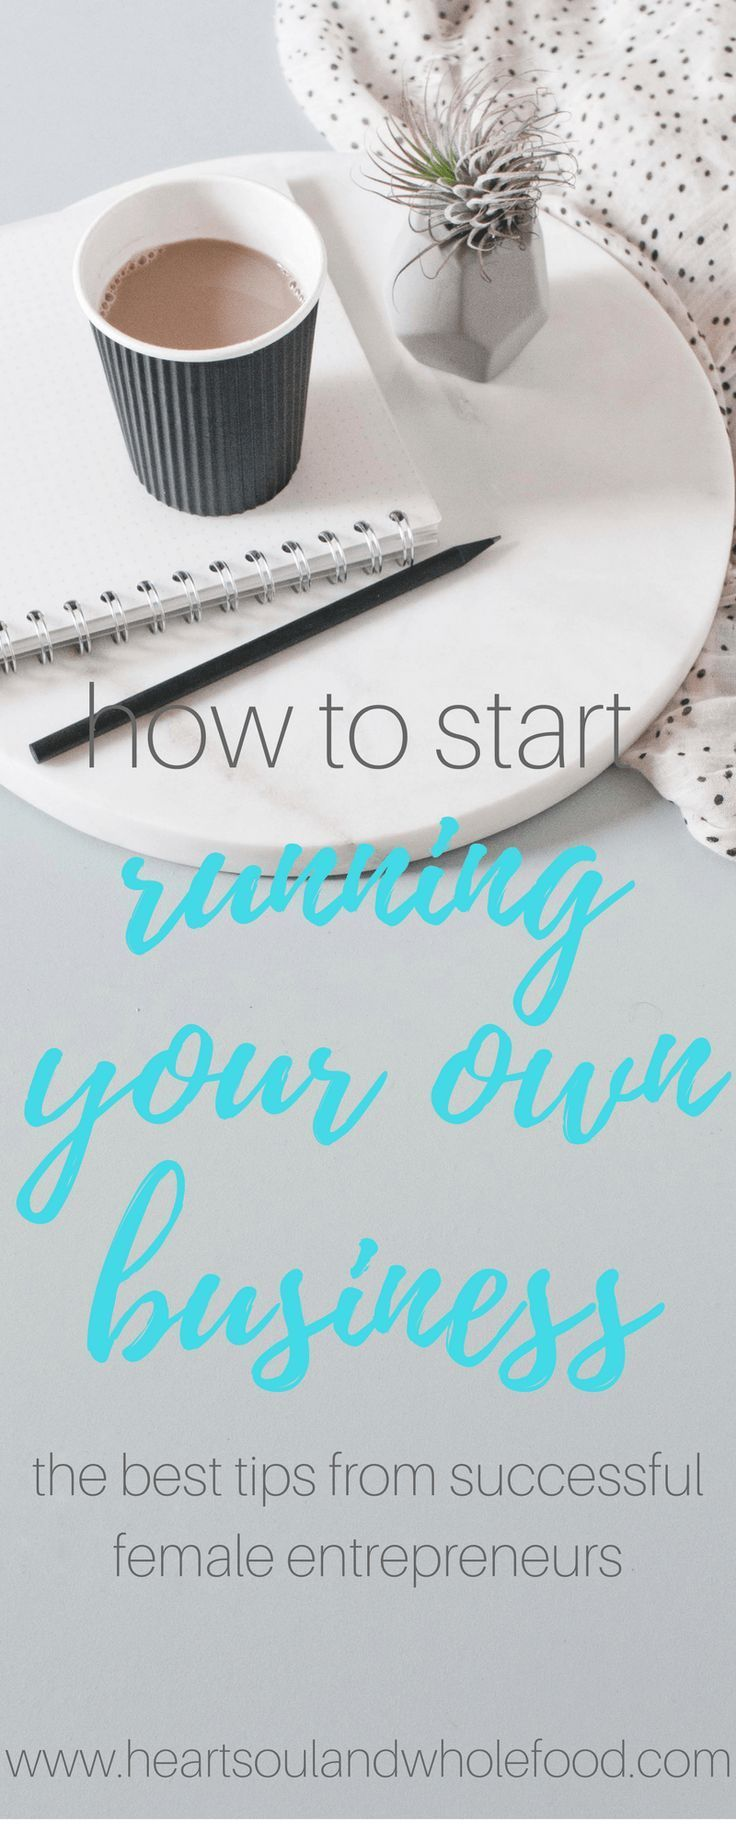 female entrepreneur, how to run your own business, small business start up, own business, women in business, women entrepreneurs, entrepreneurship, how to be successful